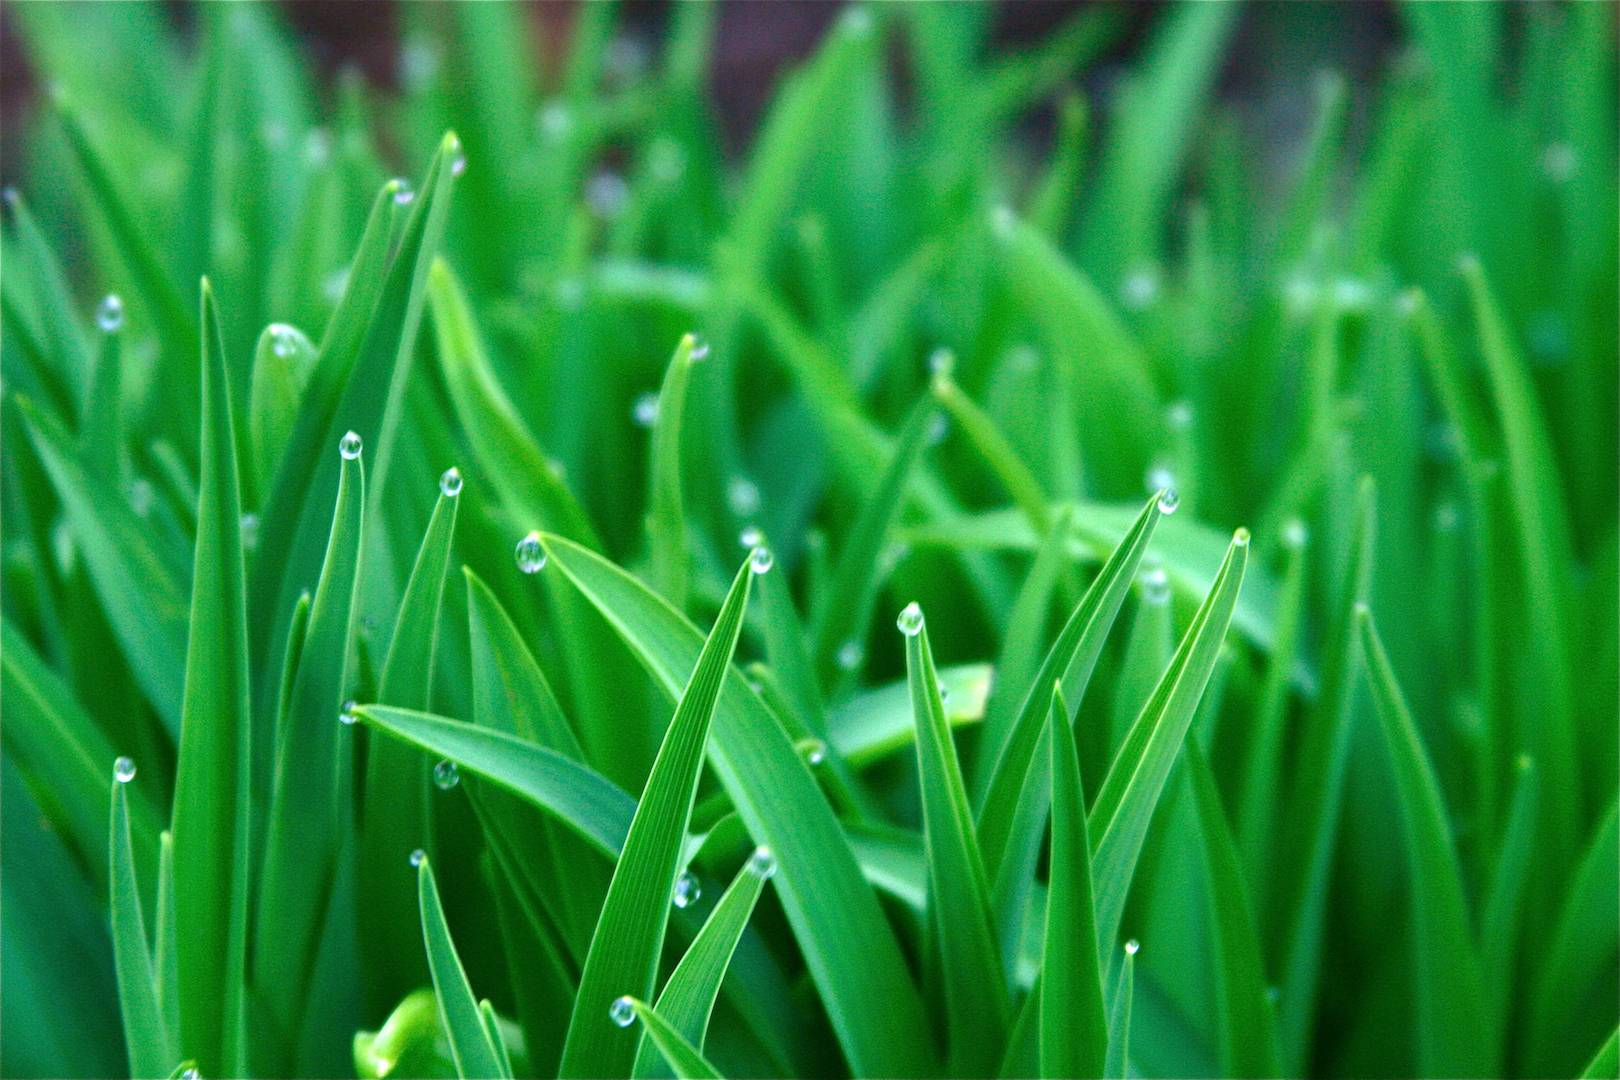 Green Grass HD Wallpaper